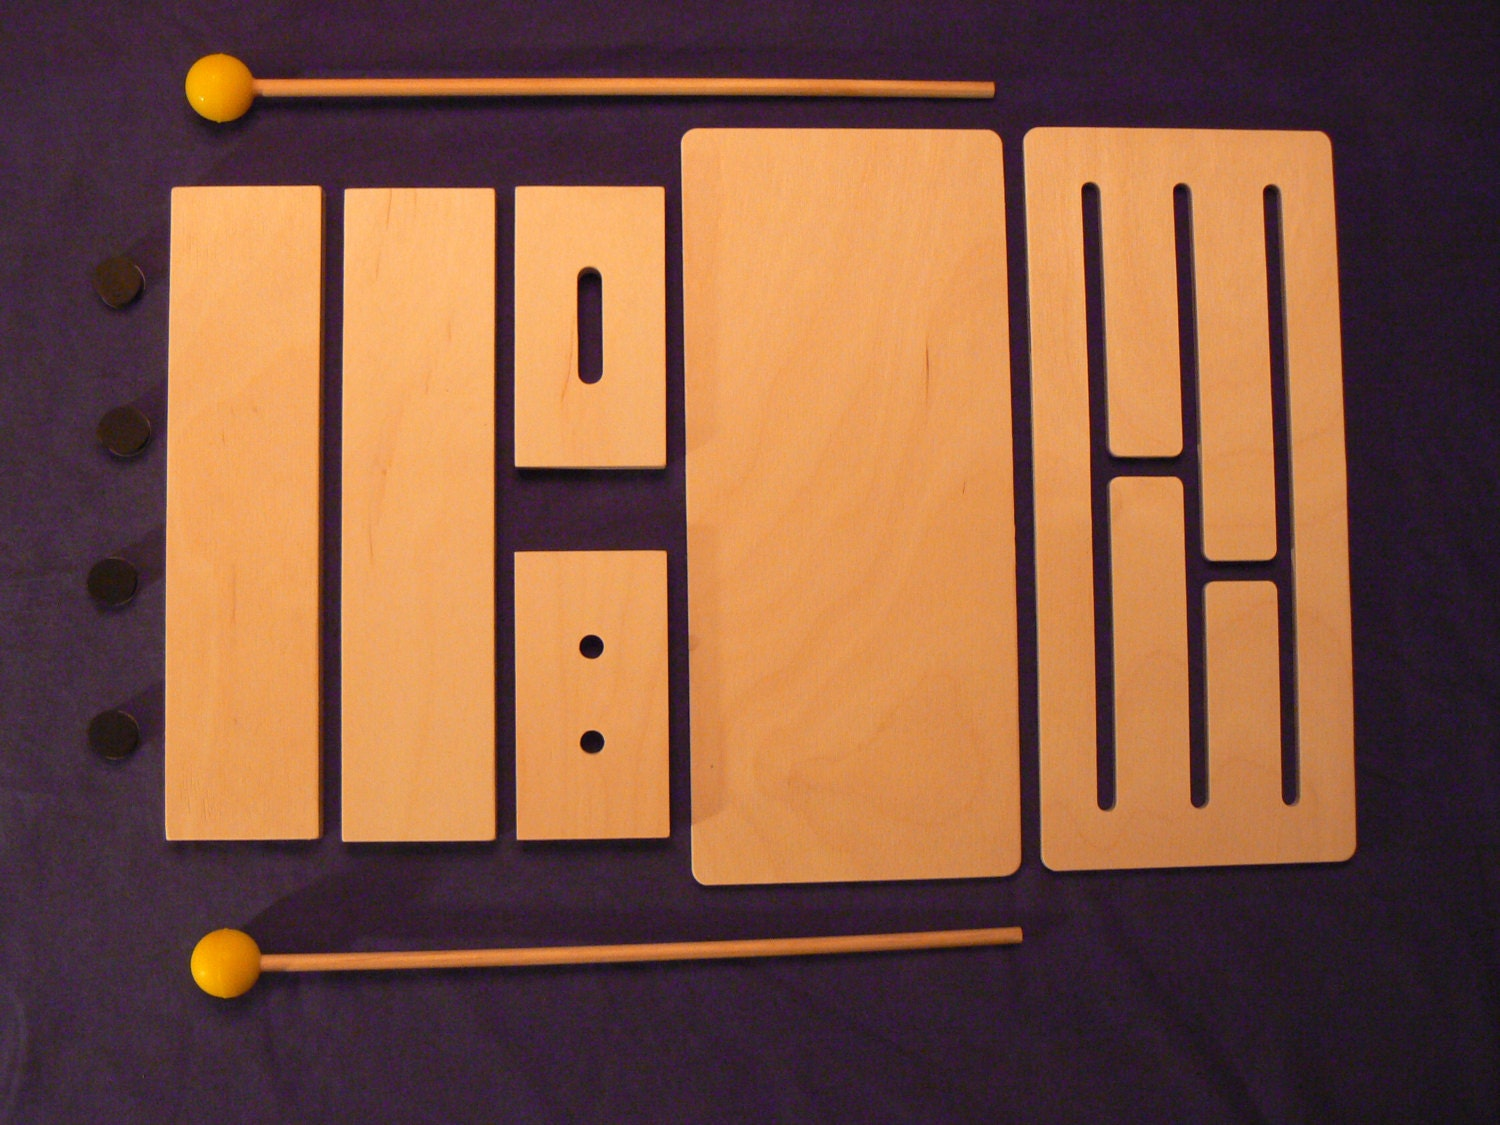 tongue drum kit by monkeyzooproductions on etsy. Black Bedroom Furniture Sets. Home Design Ideas